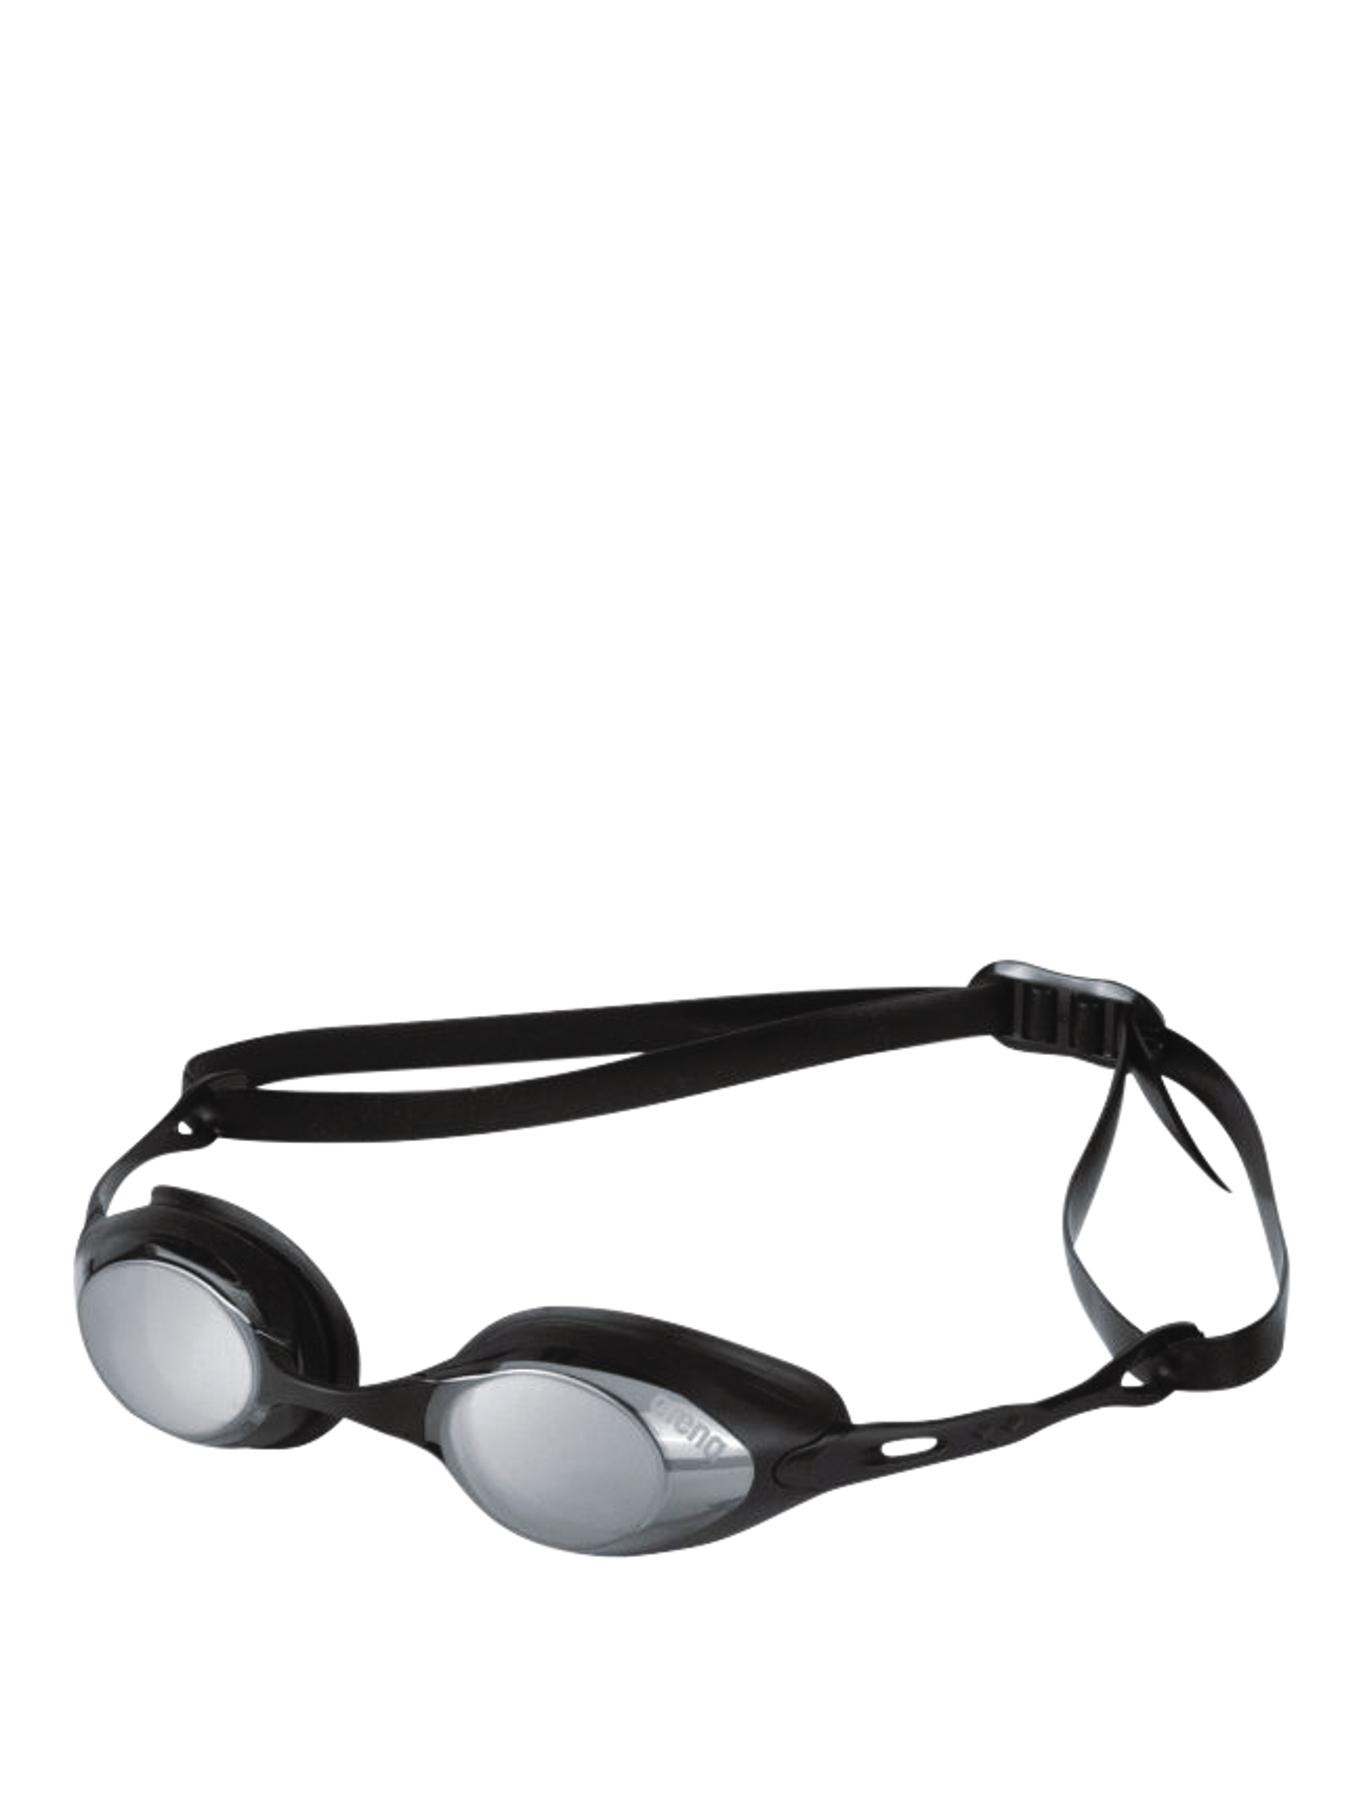 Cobra Mirror Goggles, Black